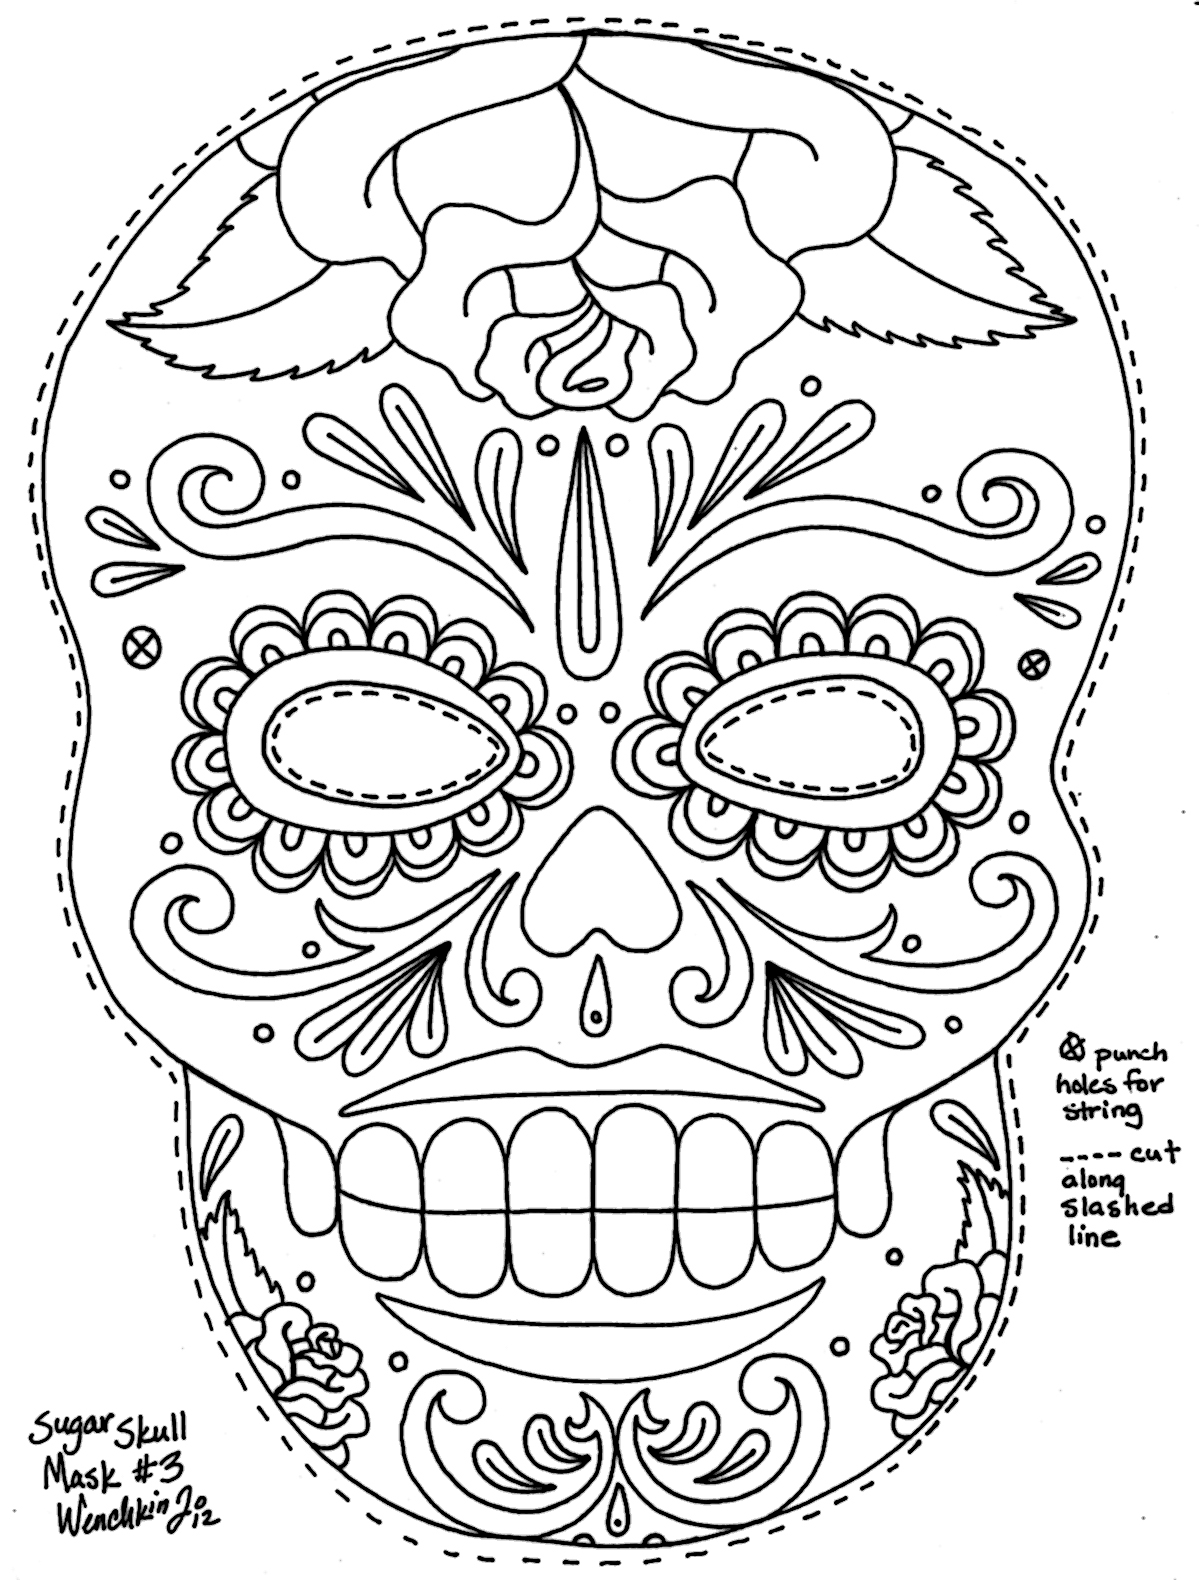 1199x1580 Yucca Flats, N.m. Wenchkin's Coloring Pages